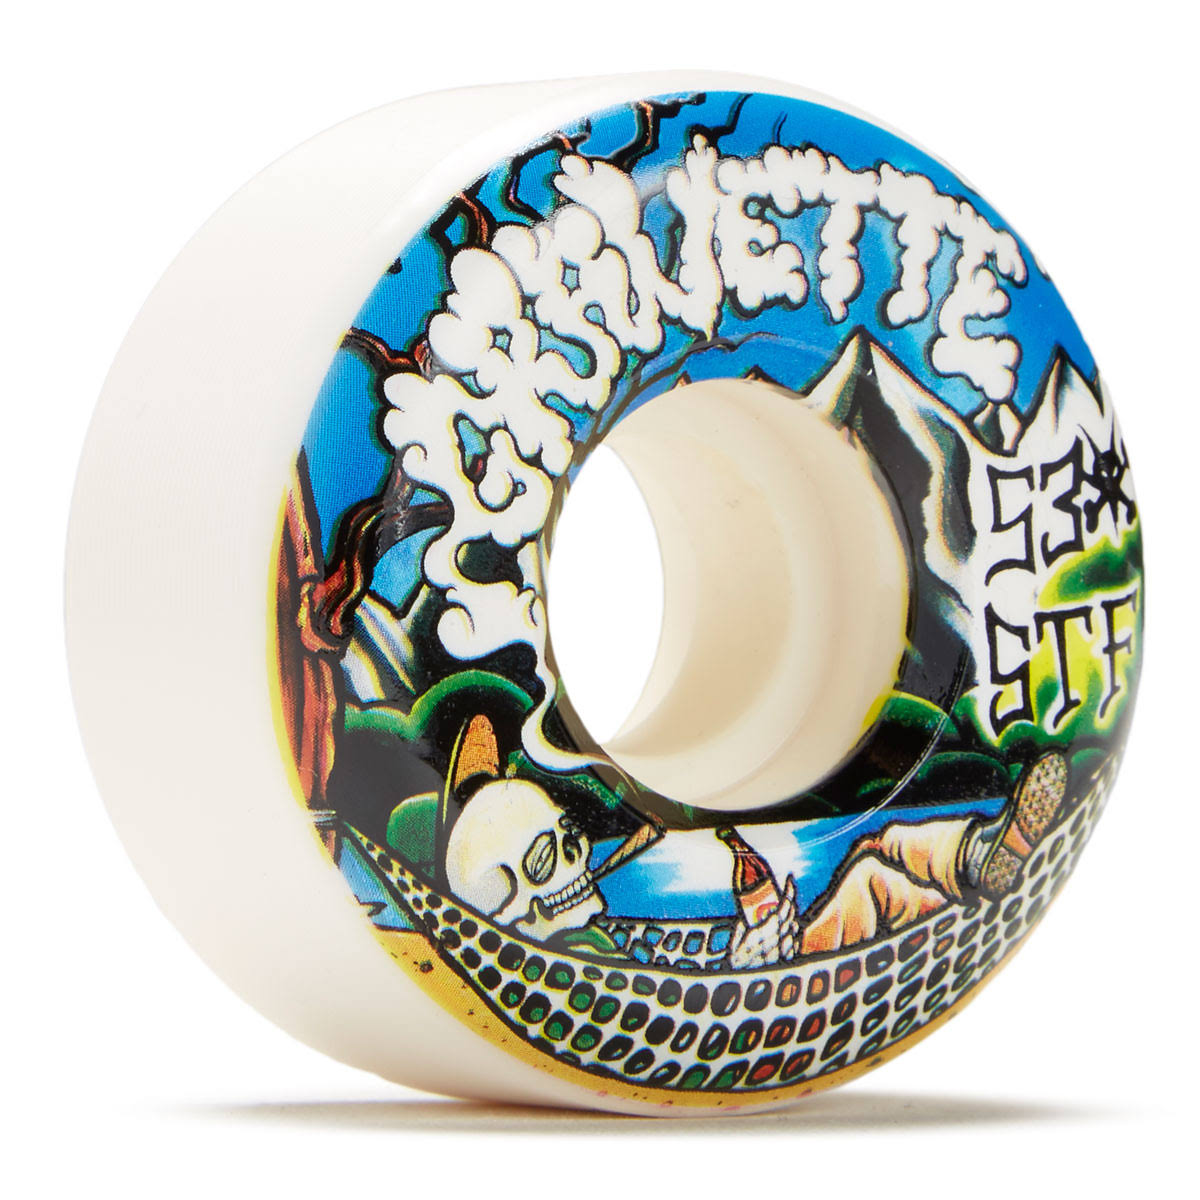 Bones Wheels STF Gravette Outdoors 83B V2 Skateboards Wheels Set - 4pcs Set, 53mm, White